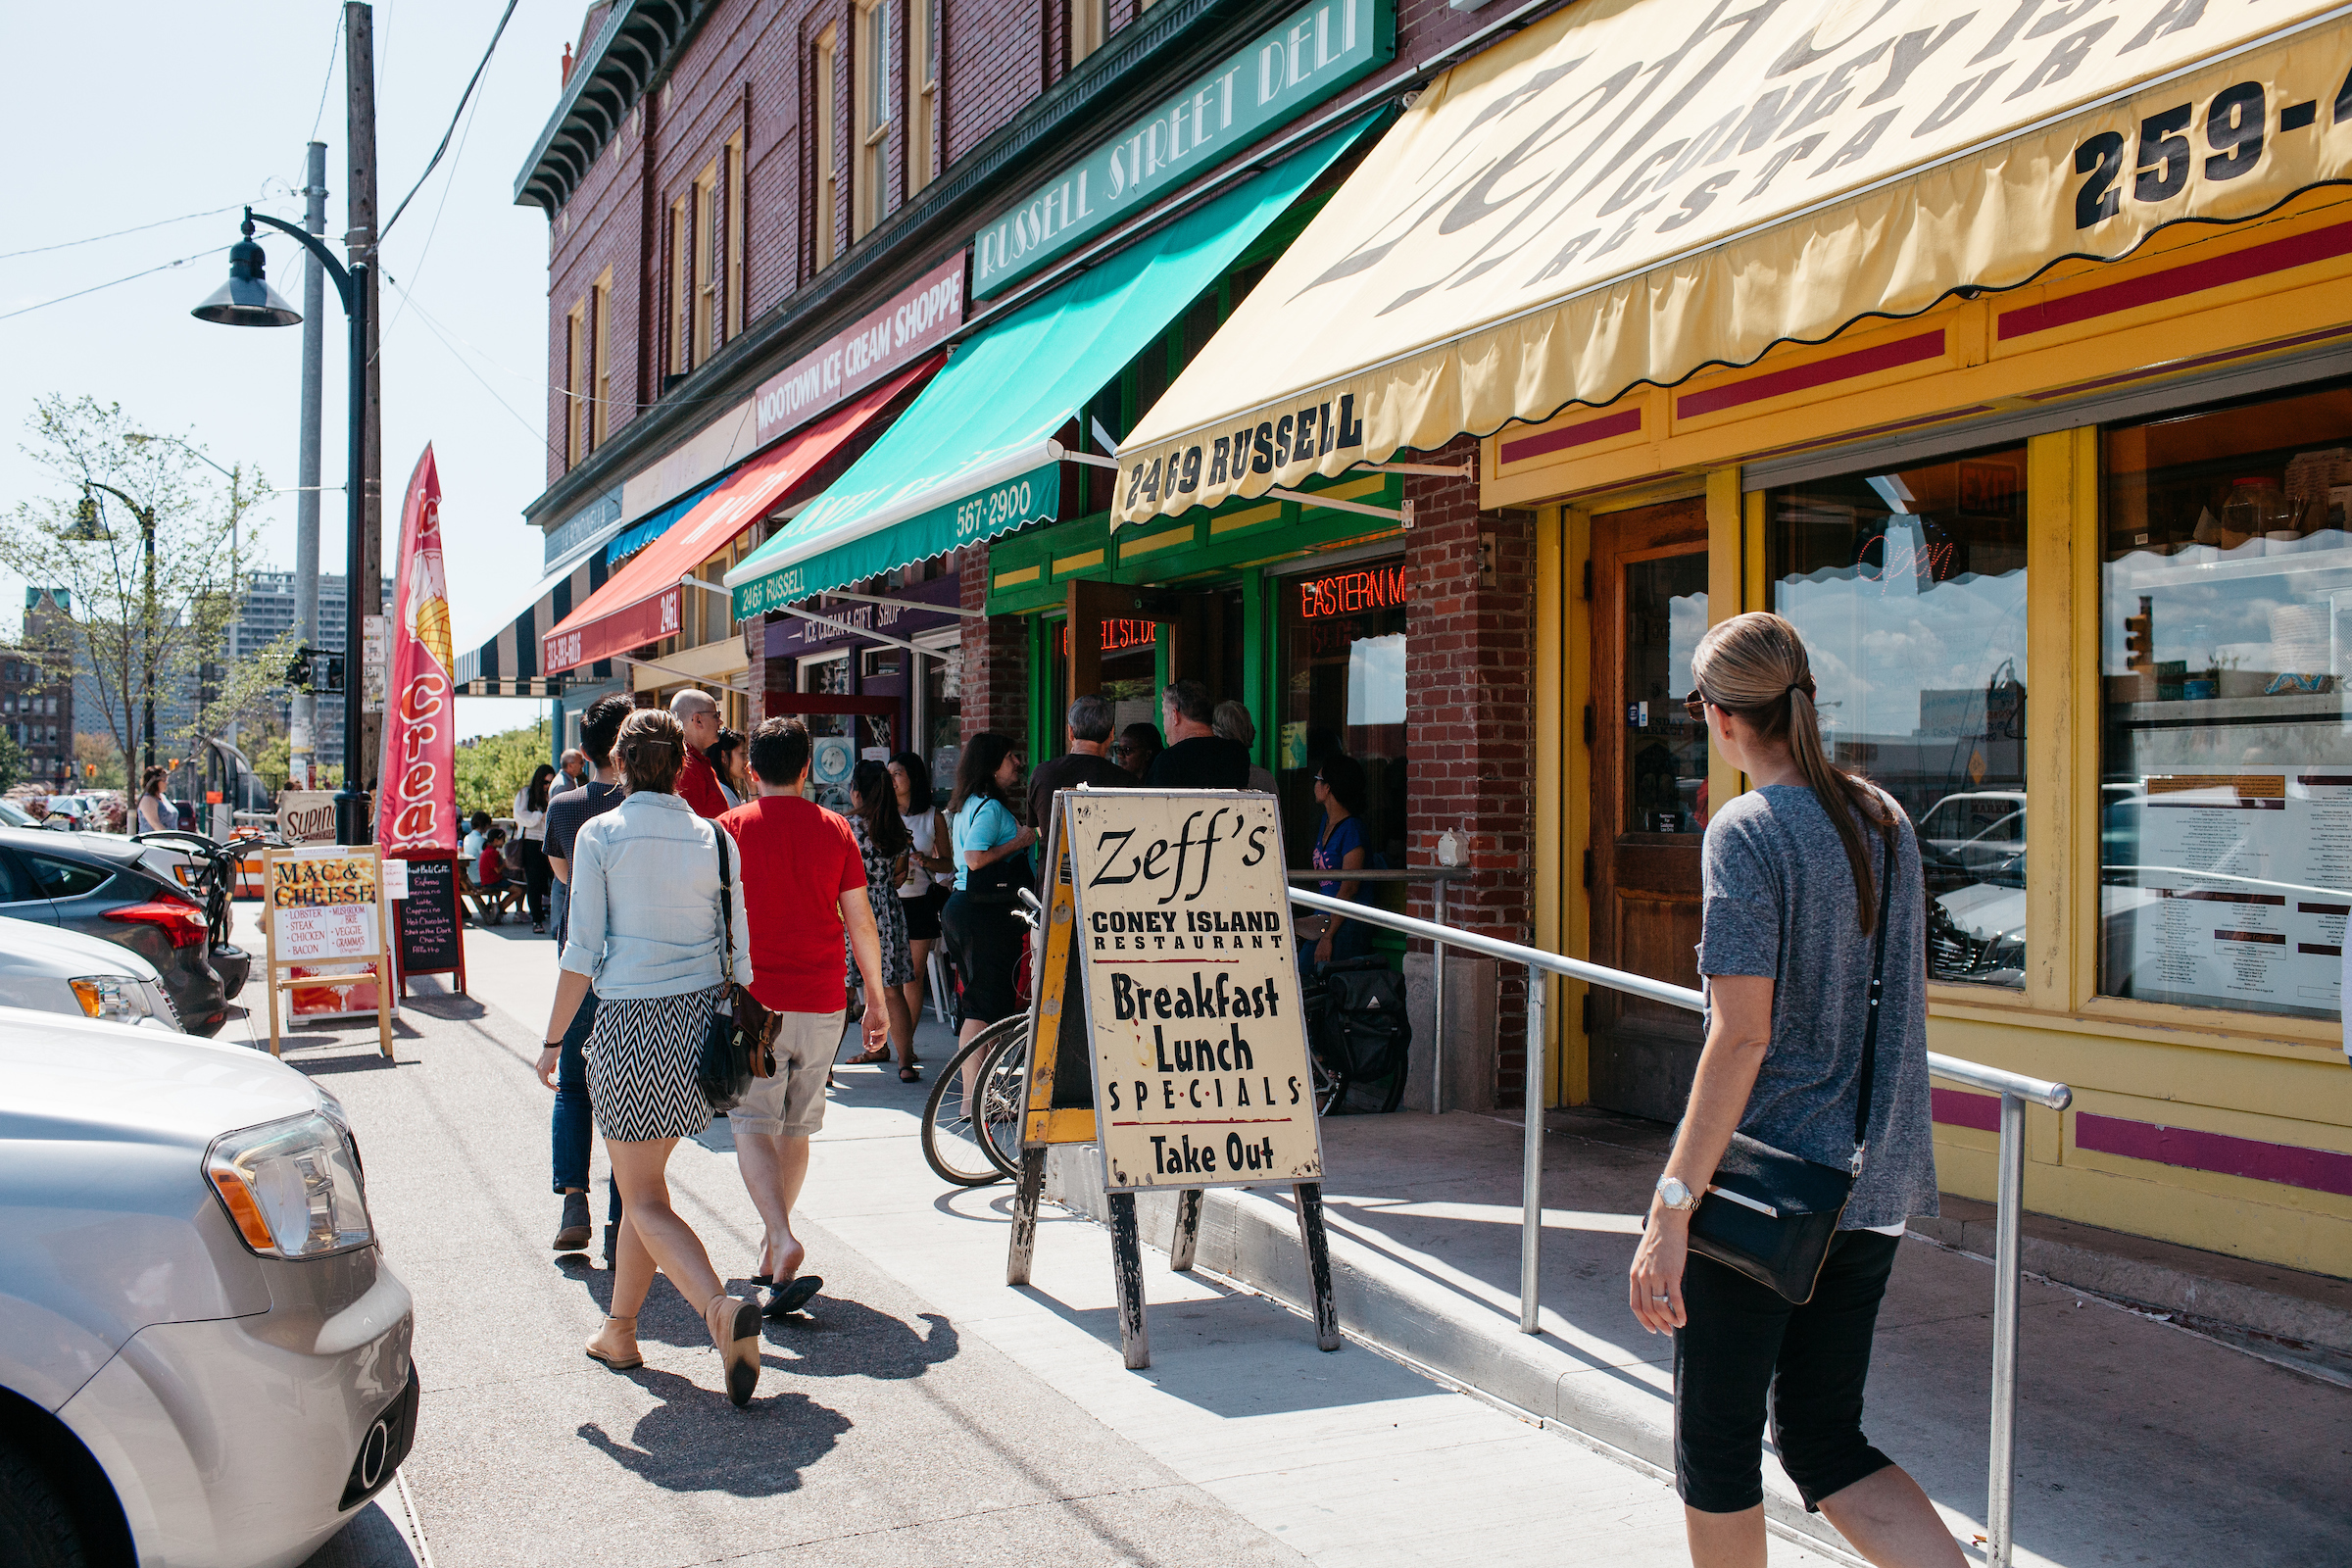 People walk past the yellow awning and sandwich board sign for Zeff's on a sunny day in Eastern Market.